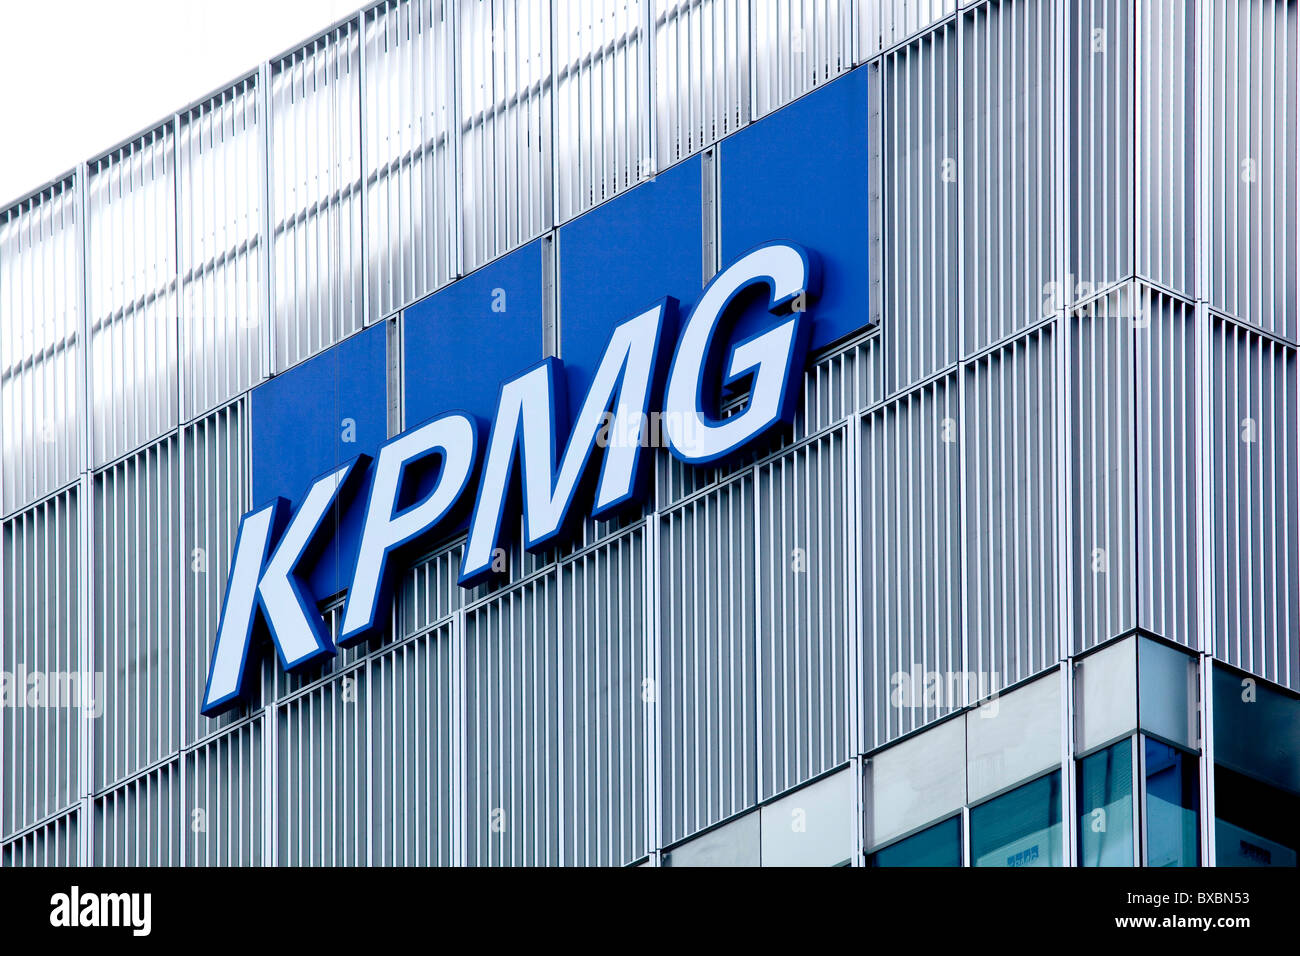 Logo of the accountants company KPMG in Canary Wharf, London, England, United Kingdom, Europe - Stock Image